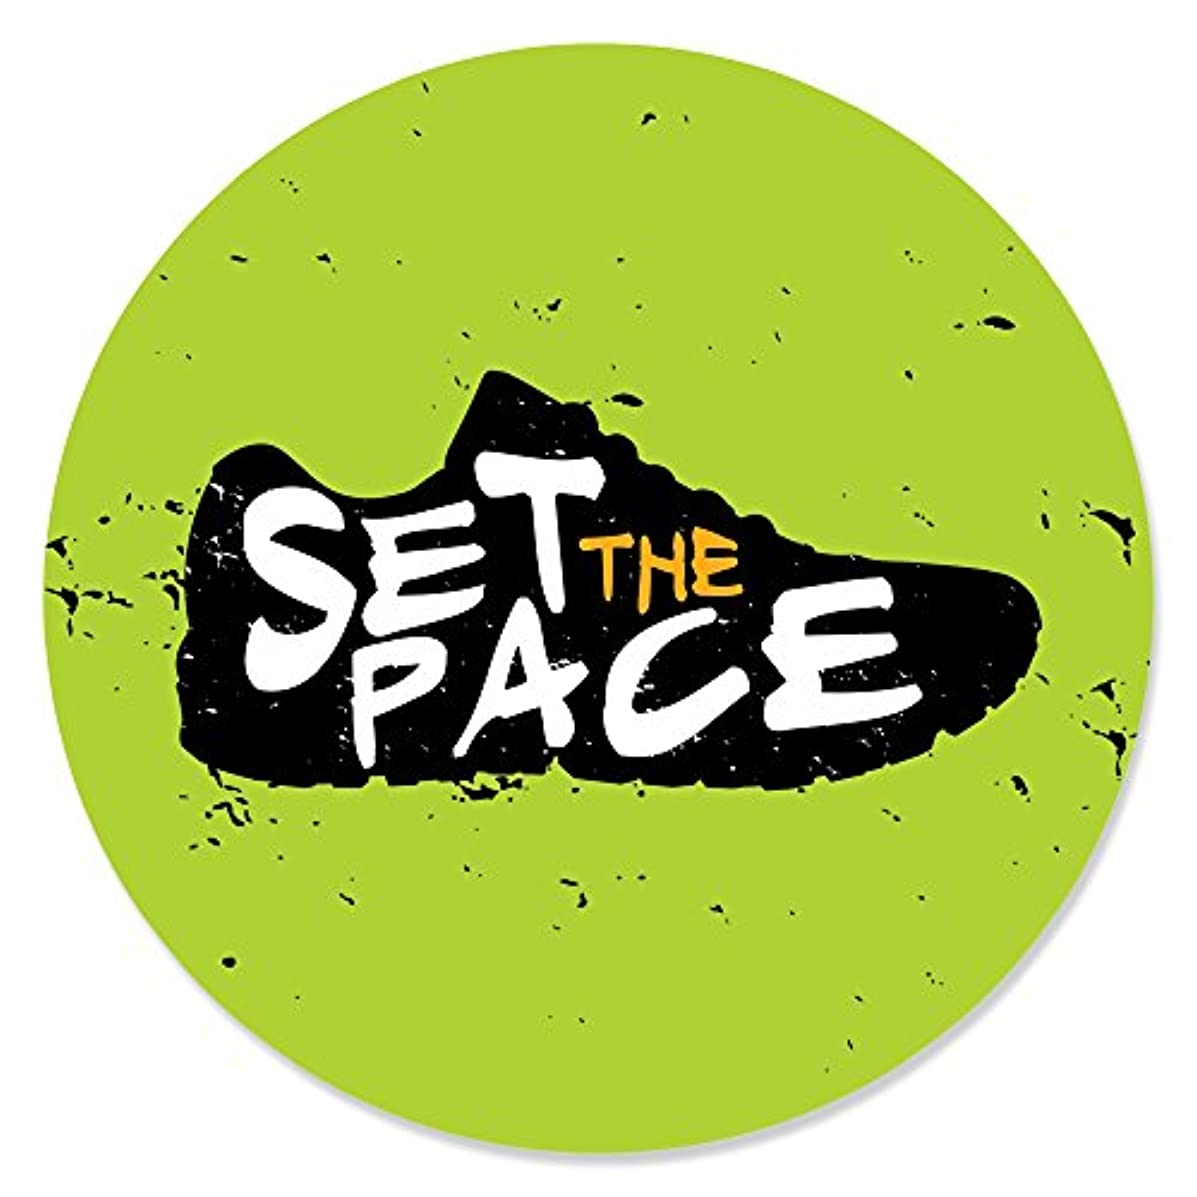 Set The Pace - Running - Track, Cross Country or Marathon Party Circle Sticker Labels - 24 Count